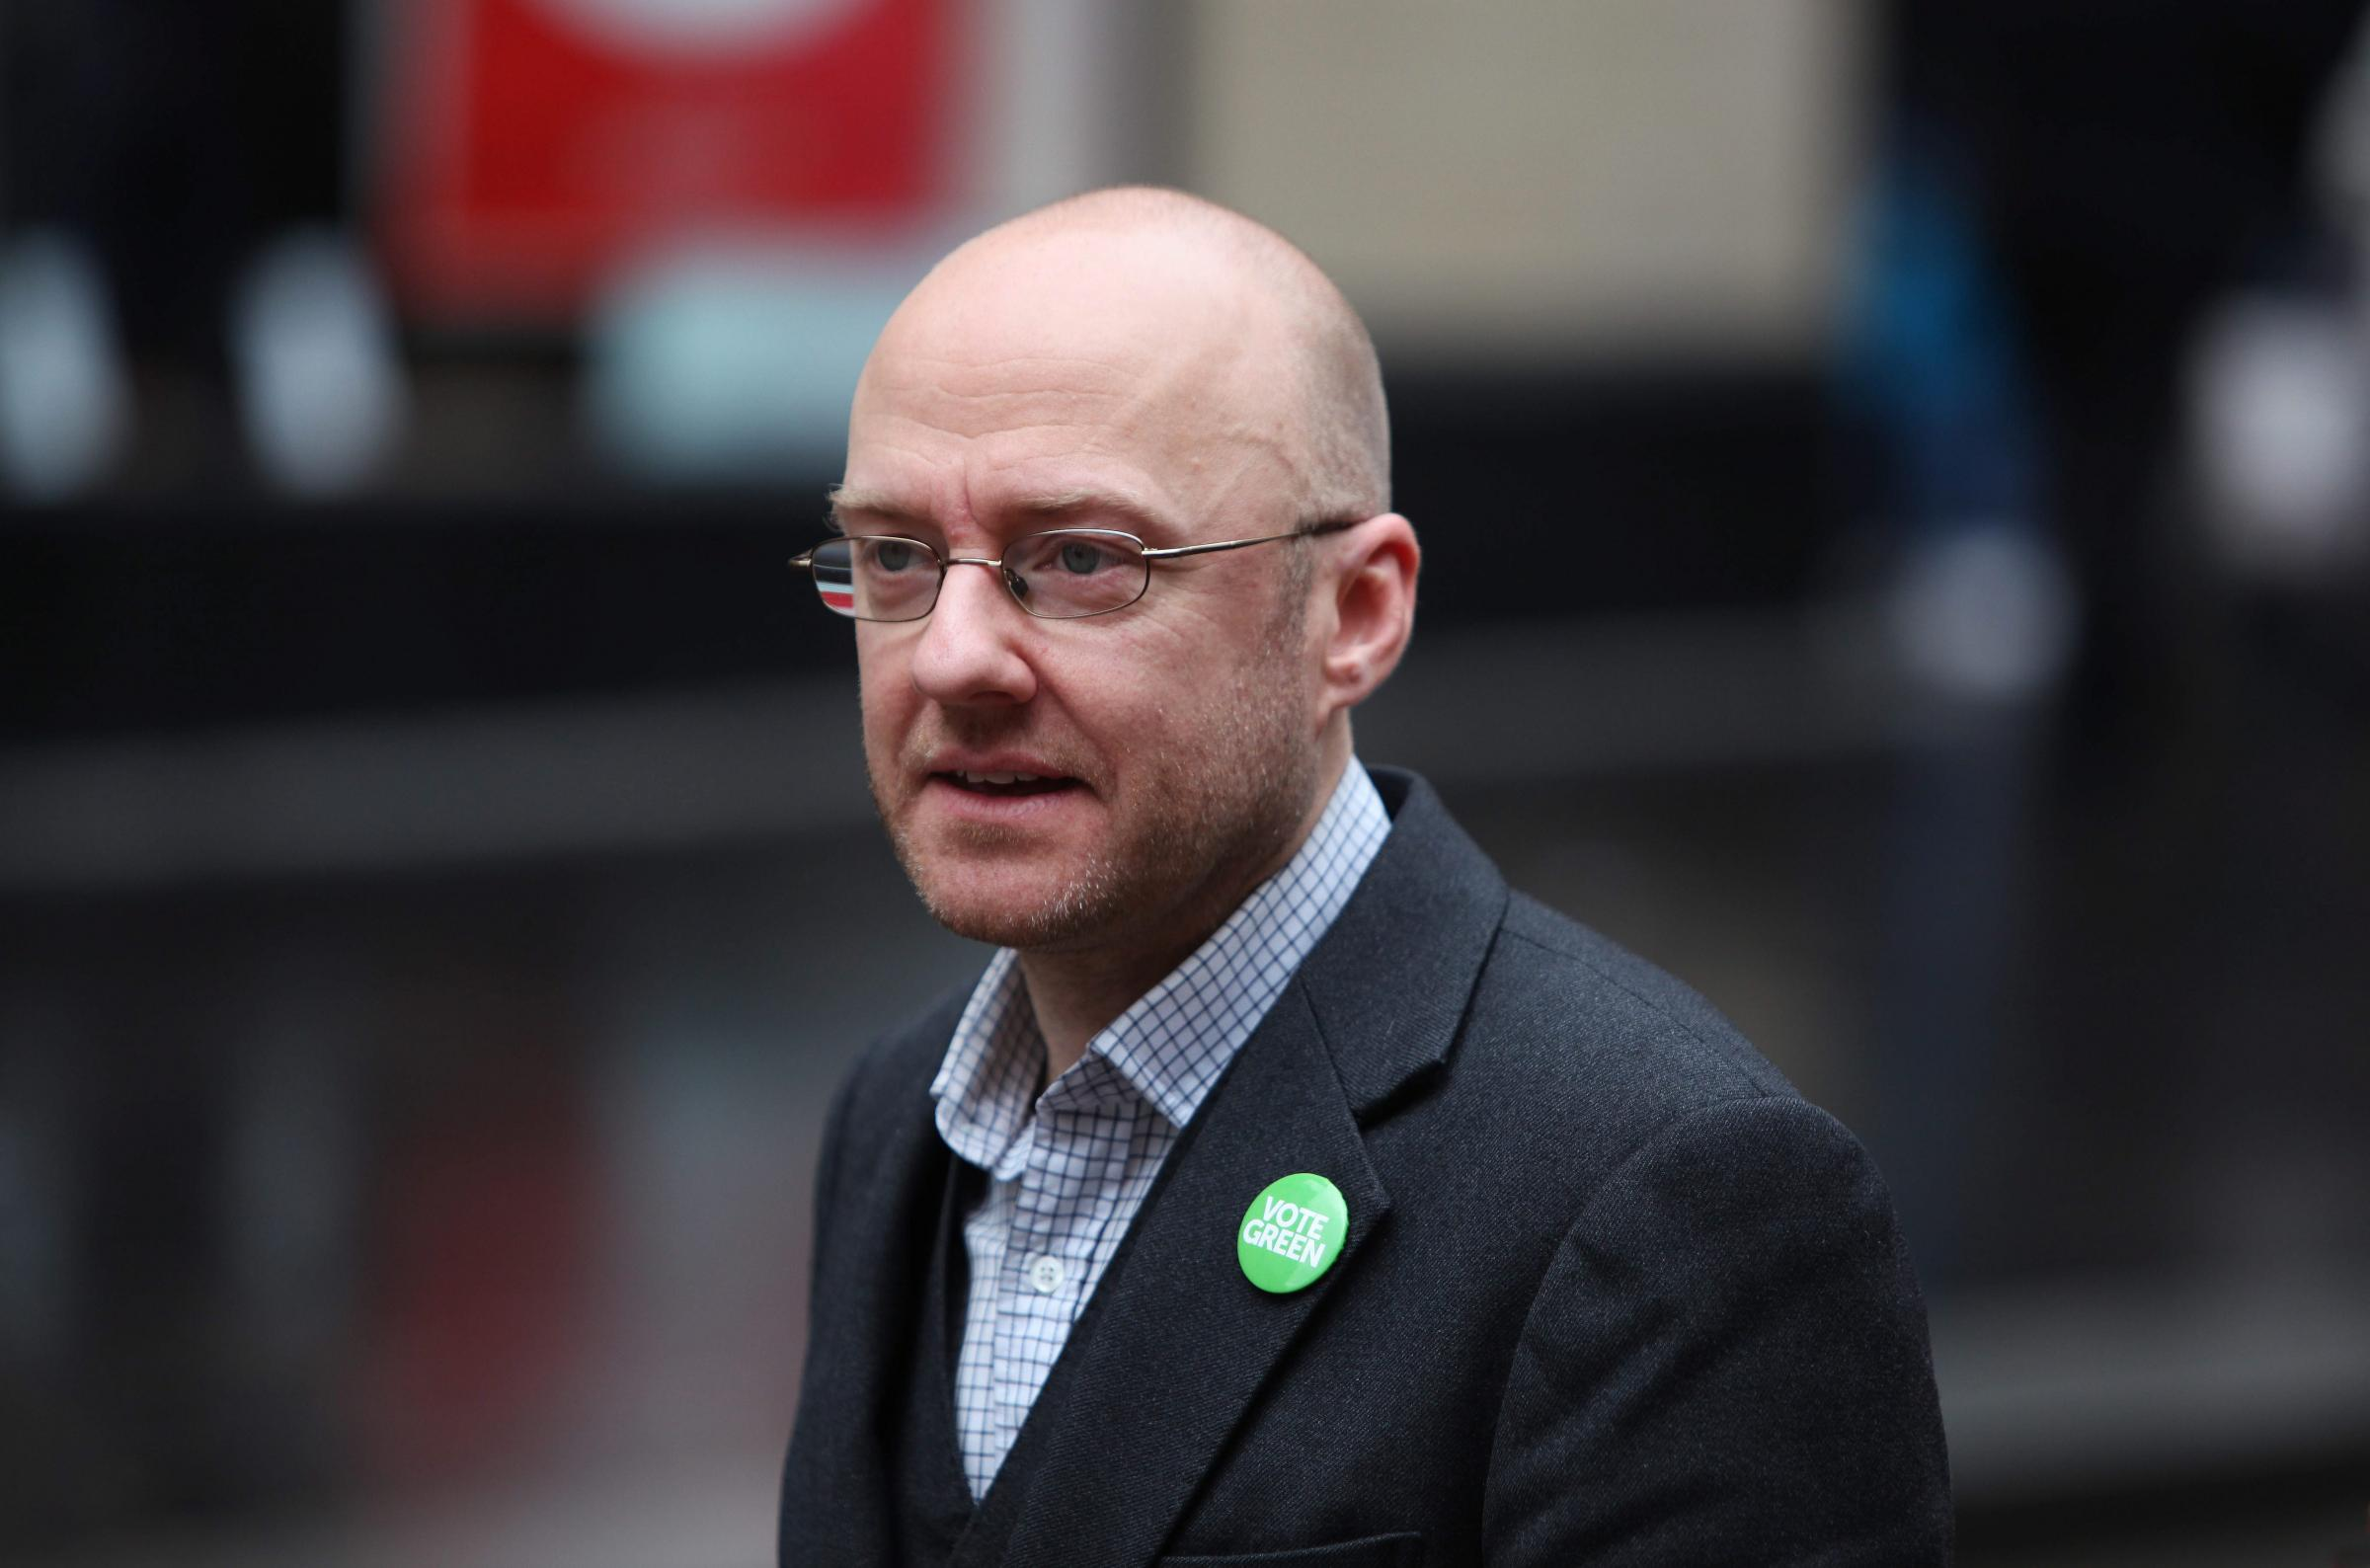 Patrick Harvie is hoping for some Green gains